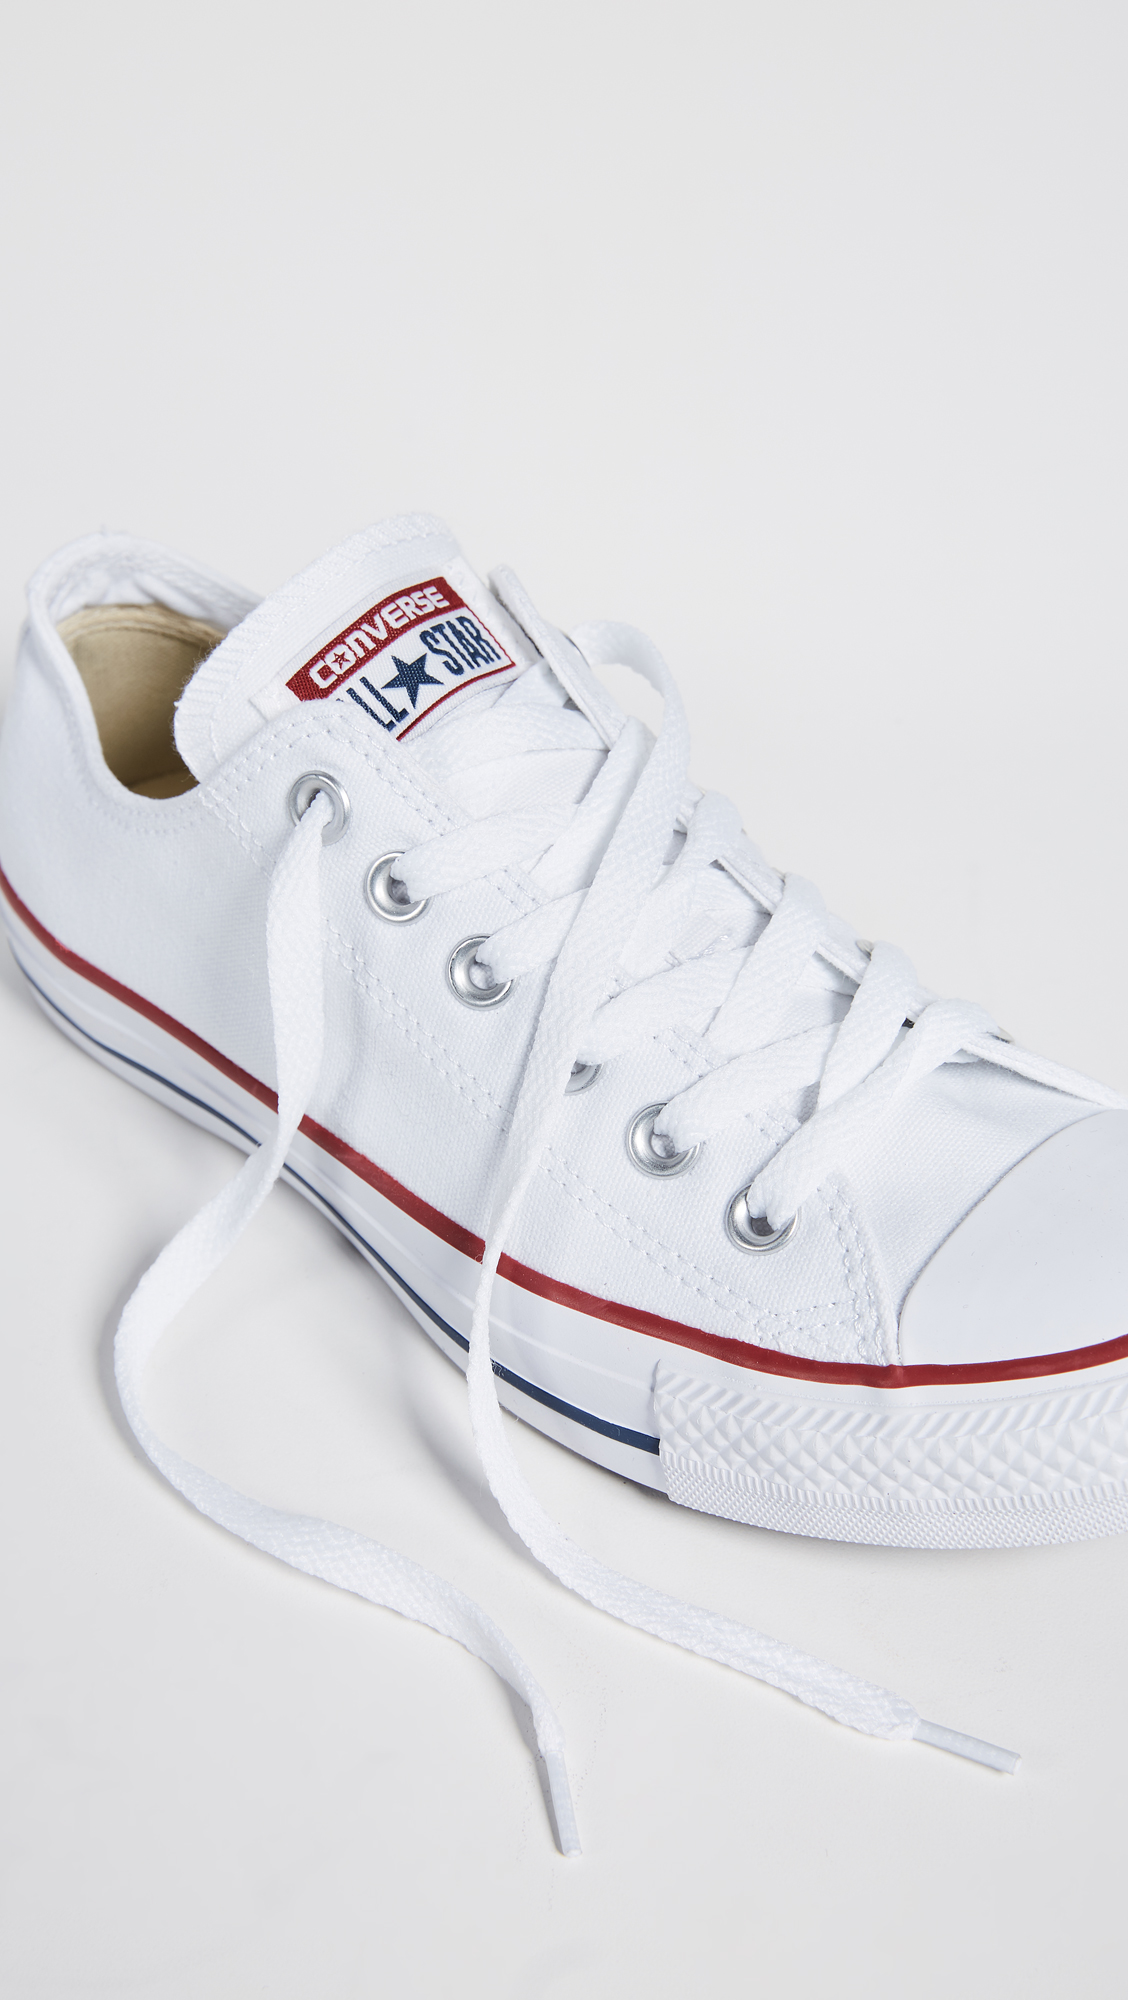 4b0cb1fb8 Converse Chuck Taylor All Star Sneakers | SHOPBOP